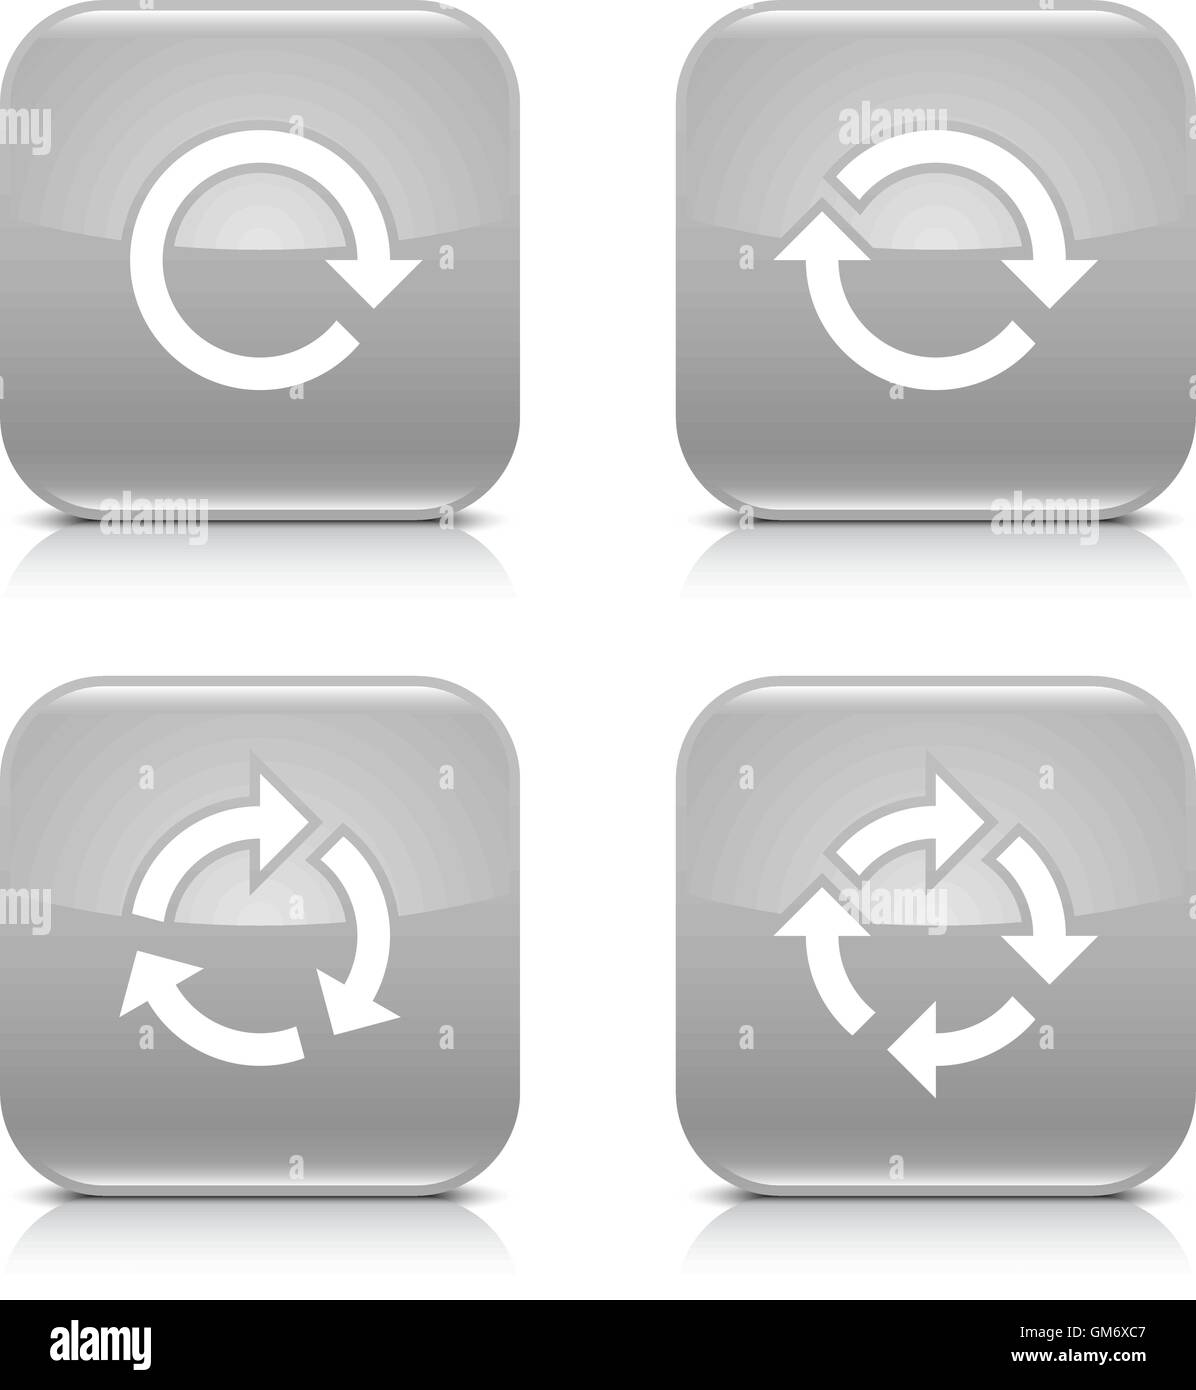 4 arrow icon. White repeat, reload, rotation, refresh sign. Set 02. Gray rounded square button with gray reflection - Stock Image